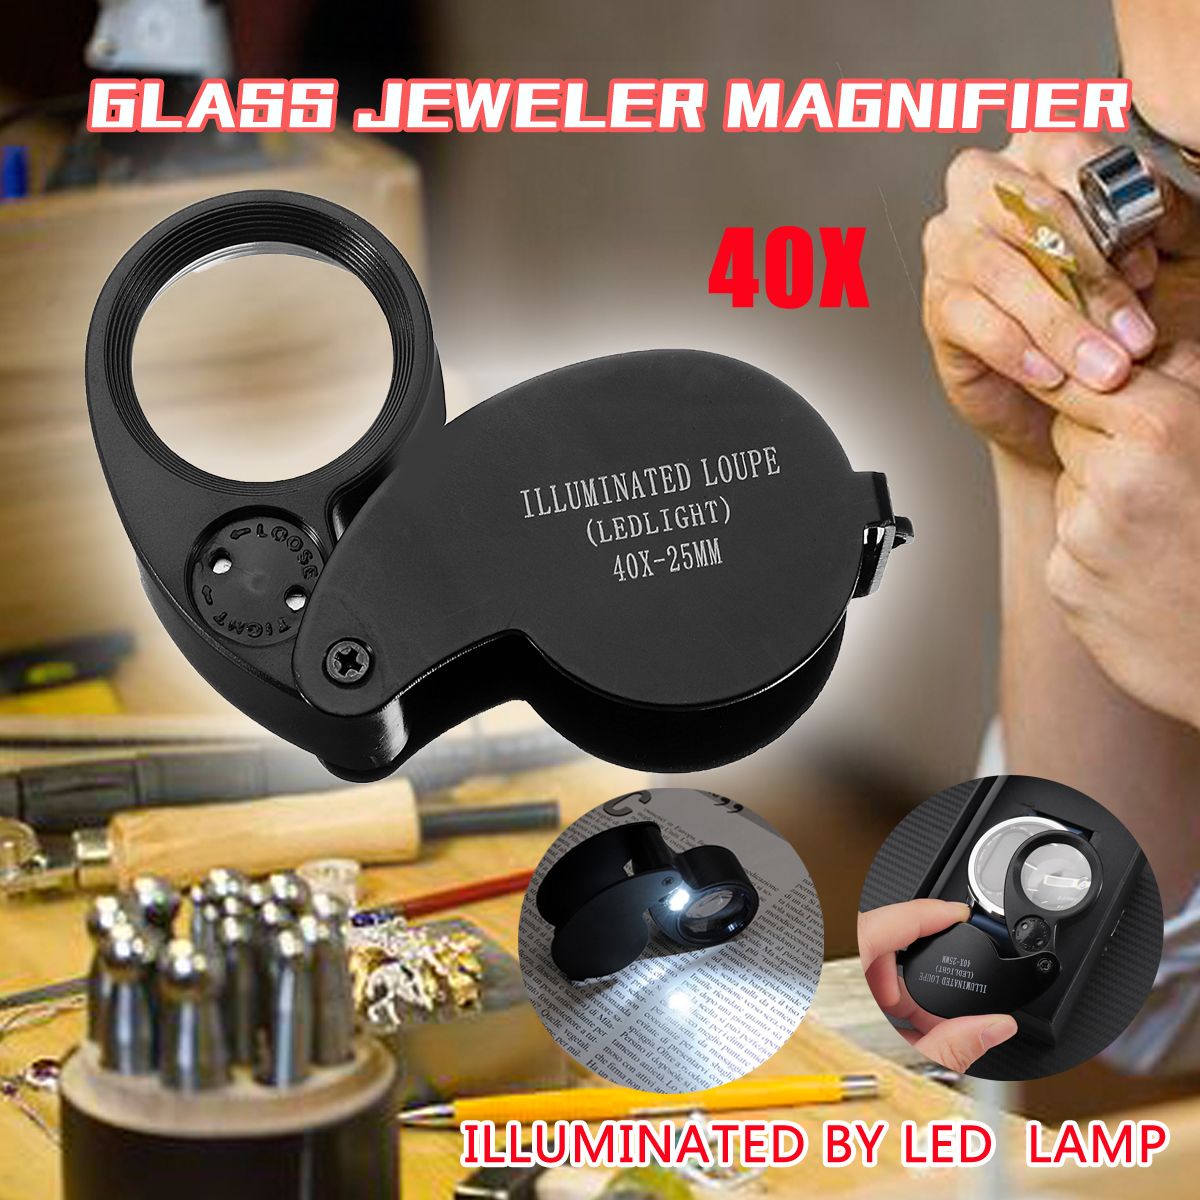 Different Price 40x 25mm Glass Magnifying Magnifier Jeweler Eye Jewelry Loupe Loop Led Light Watchmaker Tools